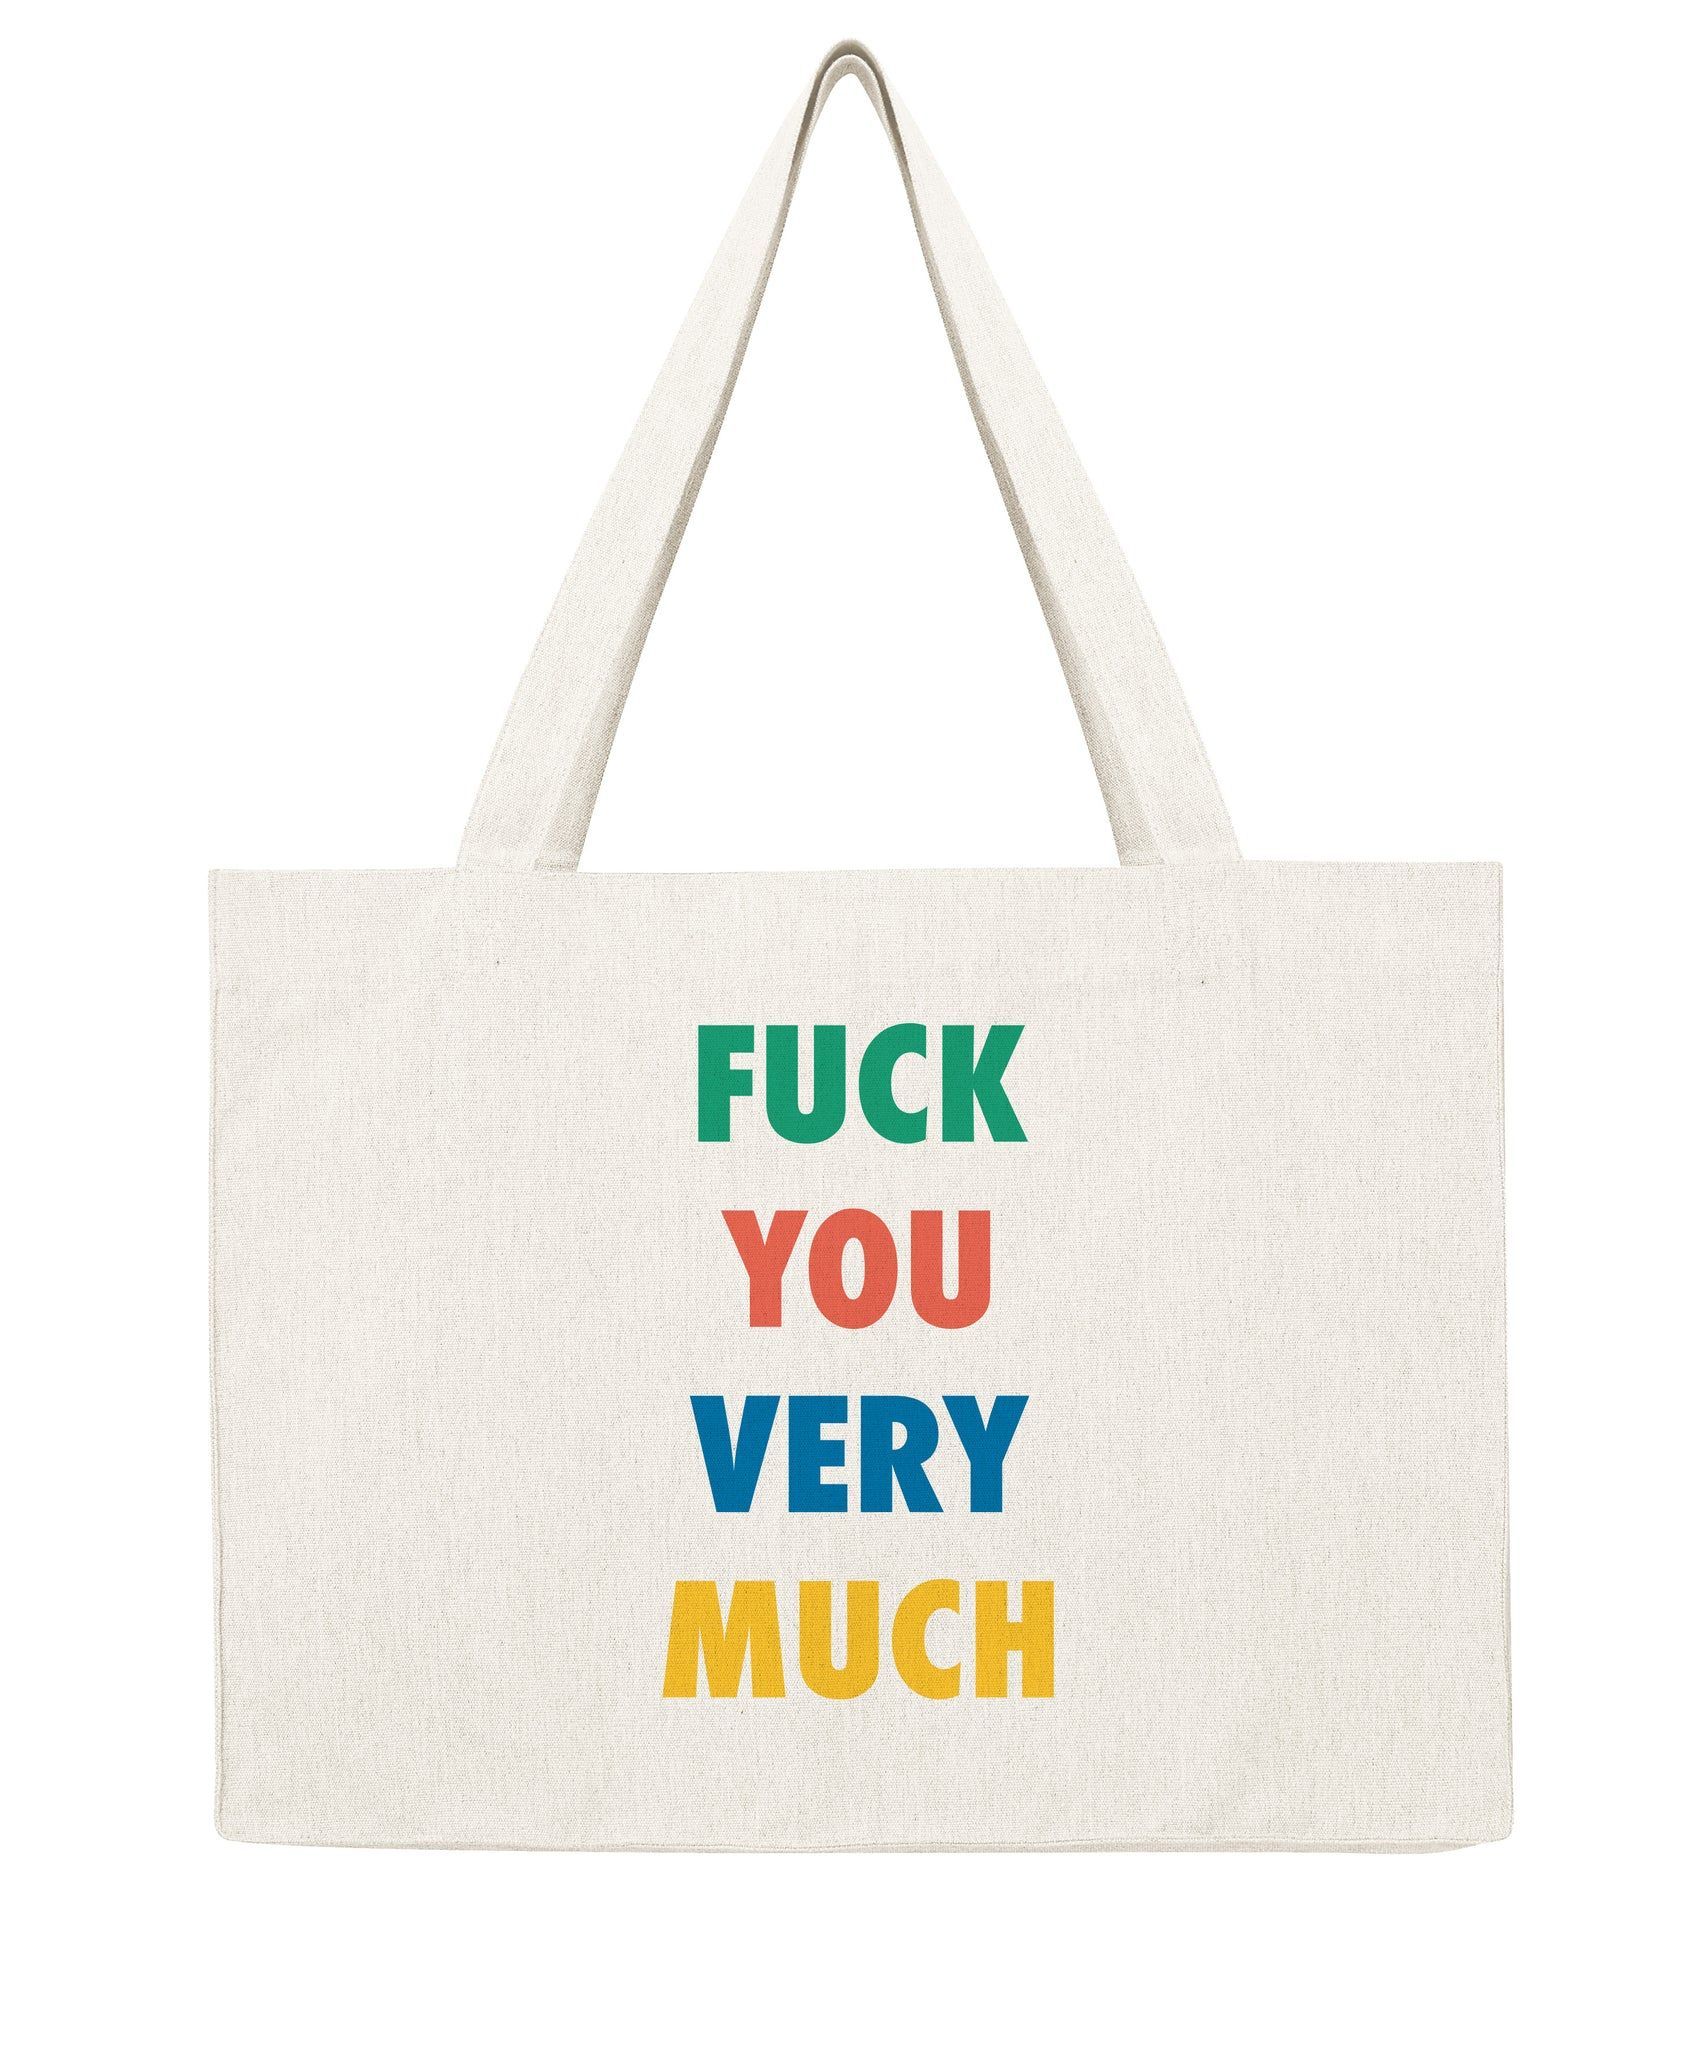 F*** you very much - Shopping bag-Sacs-Atelier Amelot